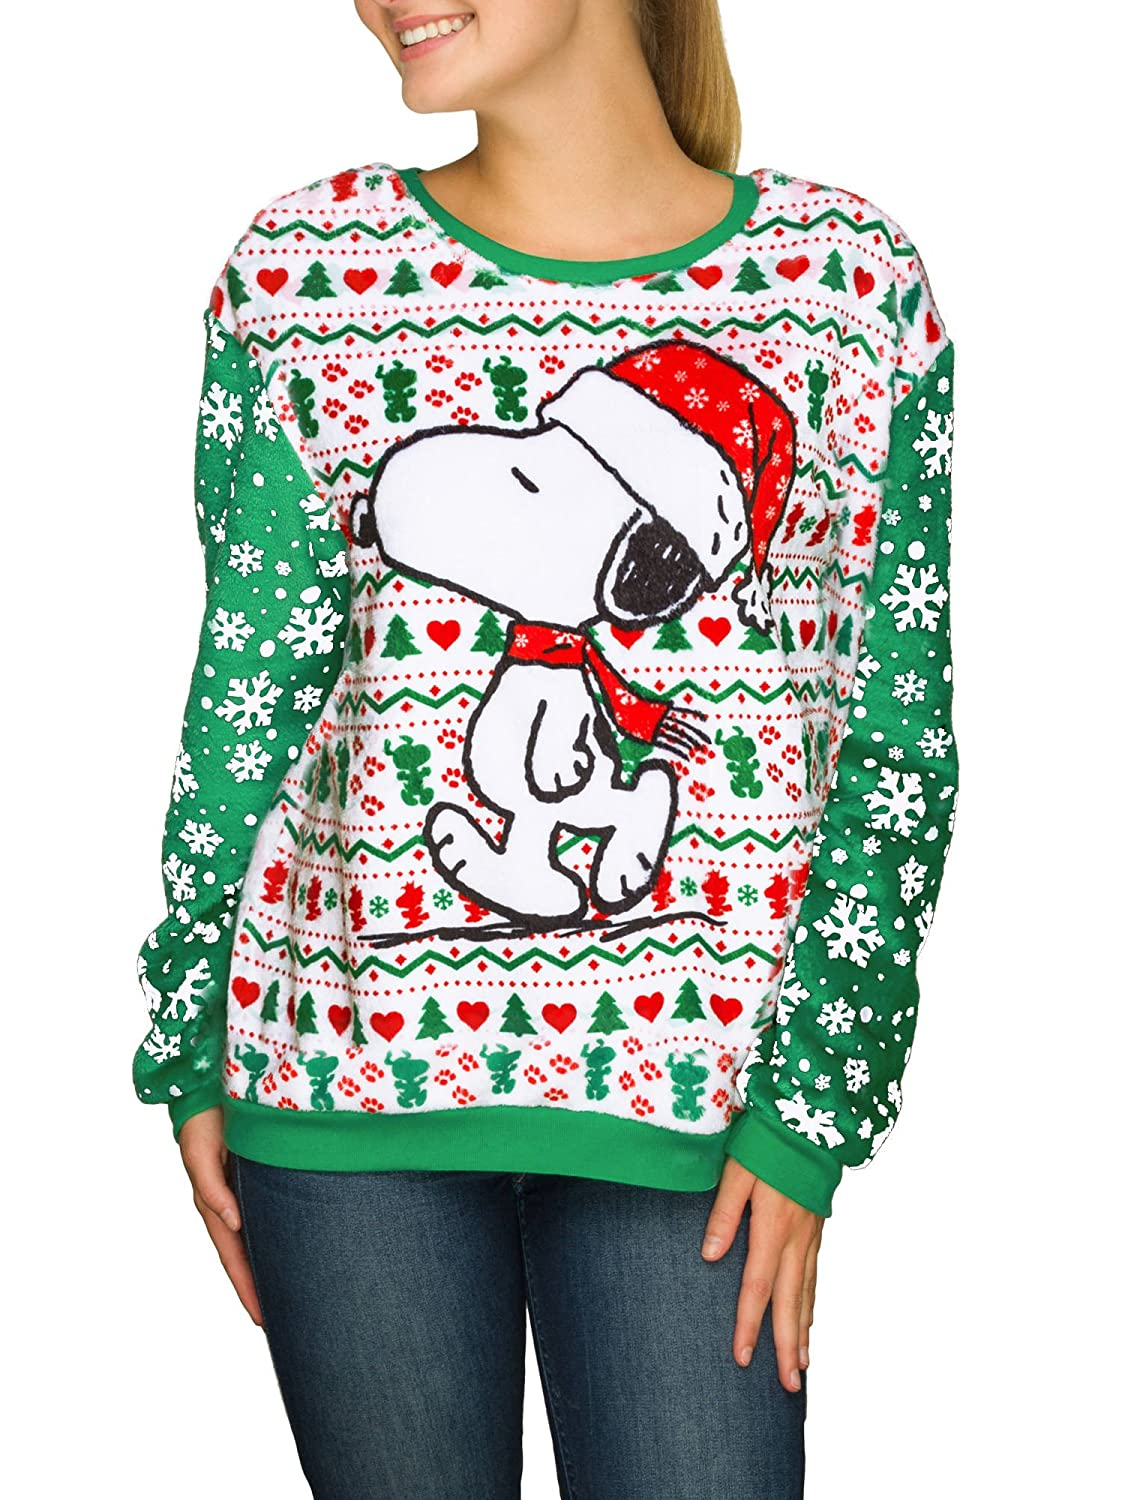 peanuts juniors snoopy minky fleece ugly christmas sweater top at amazon womens clothing store